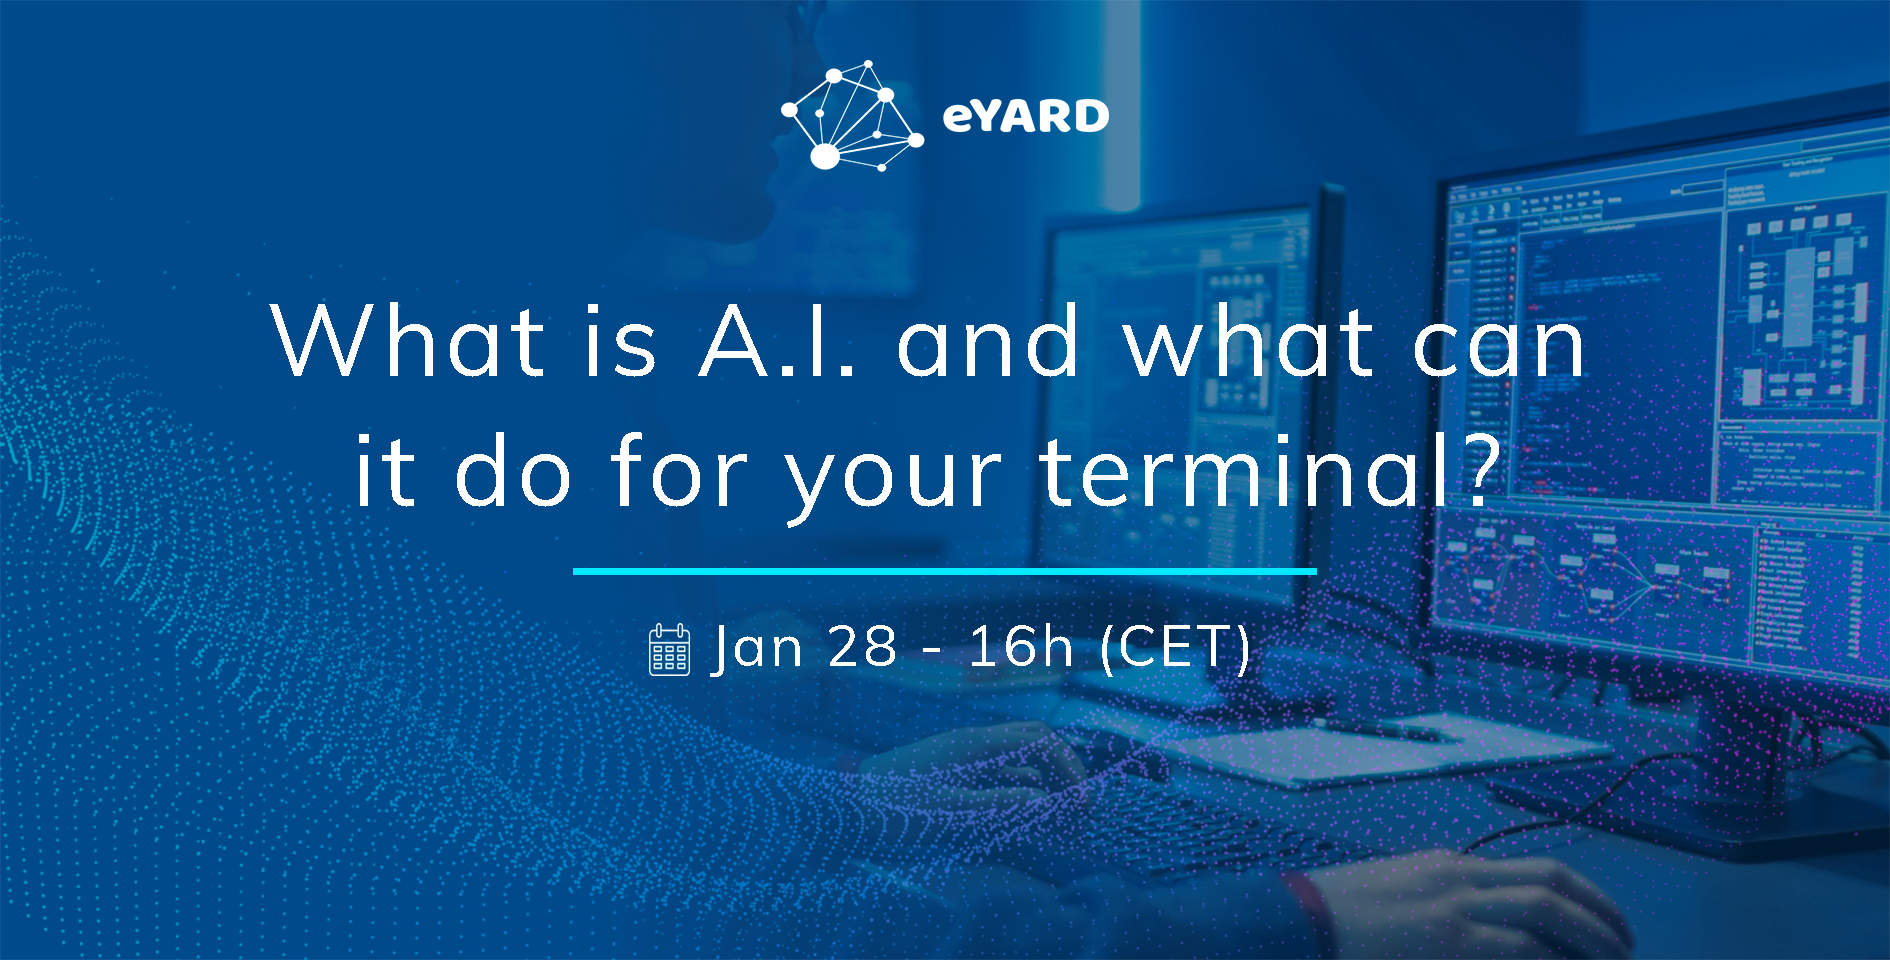 What is A.I. and what can it do for your terminal?